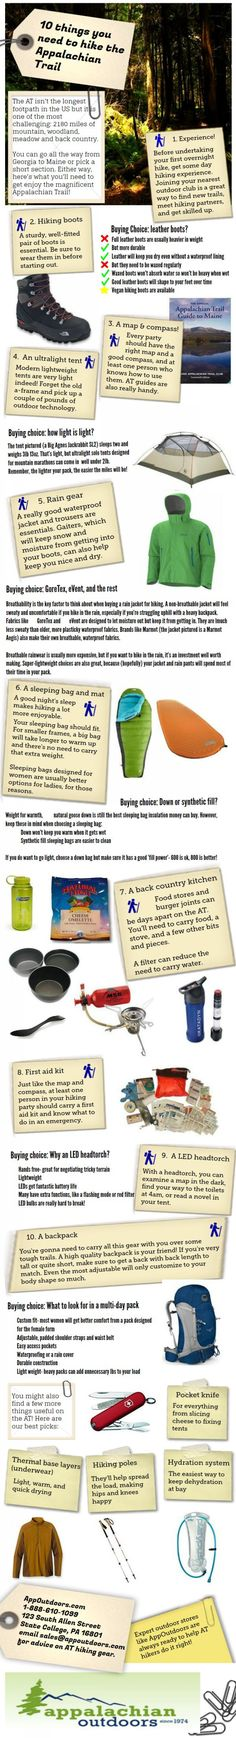 An Appalachian Trail packing list Infographic... 10 things you need! #hiking #outdoors #camping